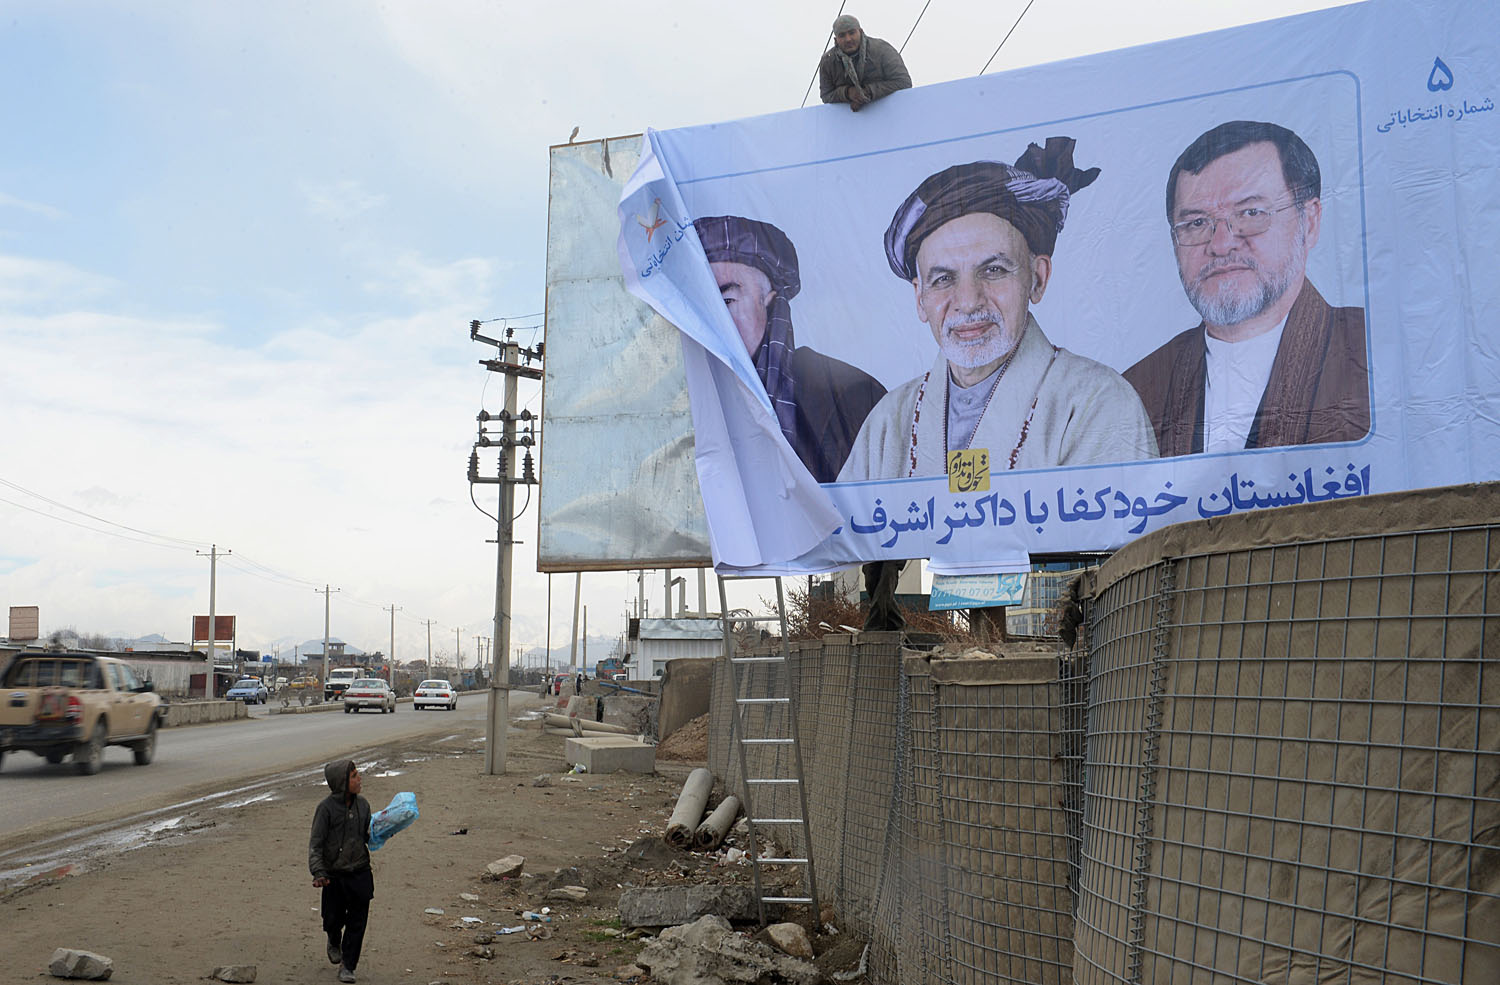 Afghan workers install an election campaign poster of Afghan presidential candidate Ashraf Ghani Ahmadzai in Kabul on Feb. 3, 2014.